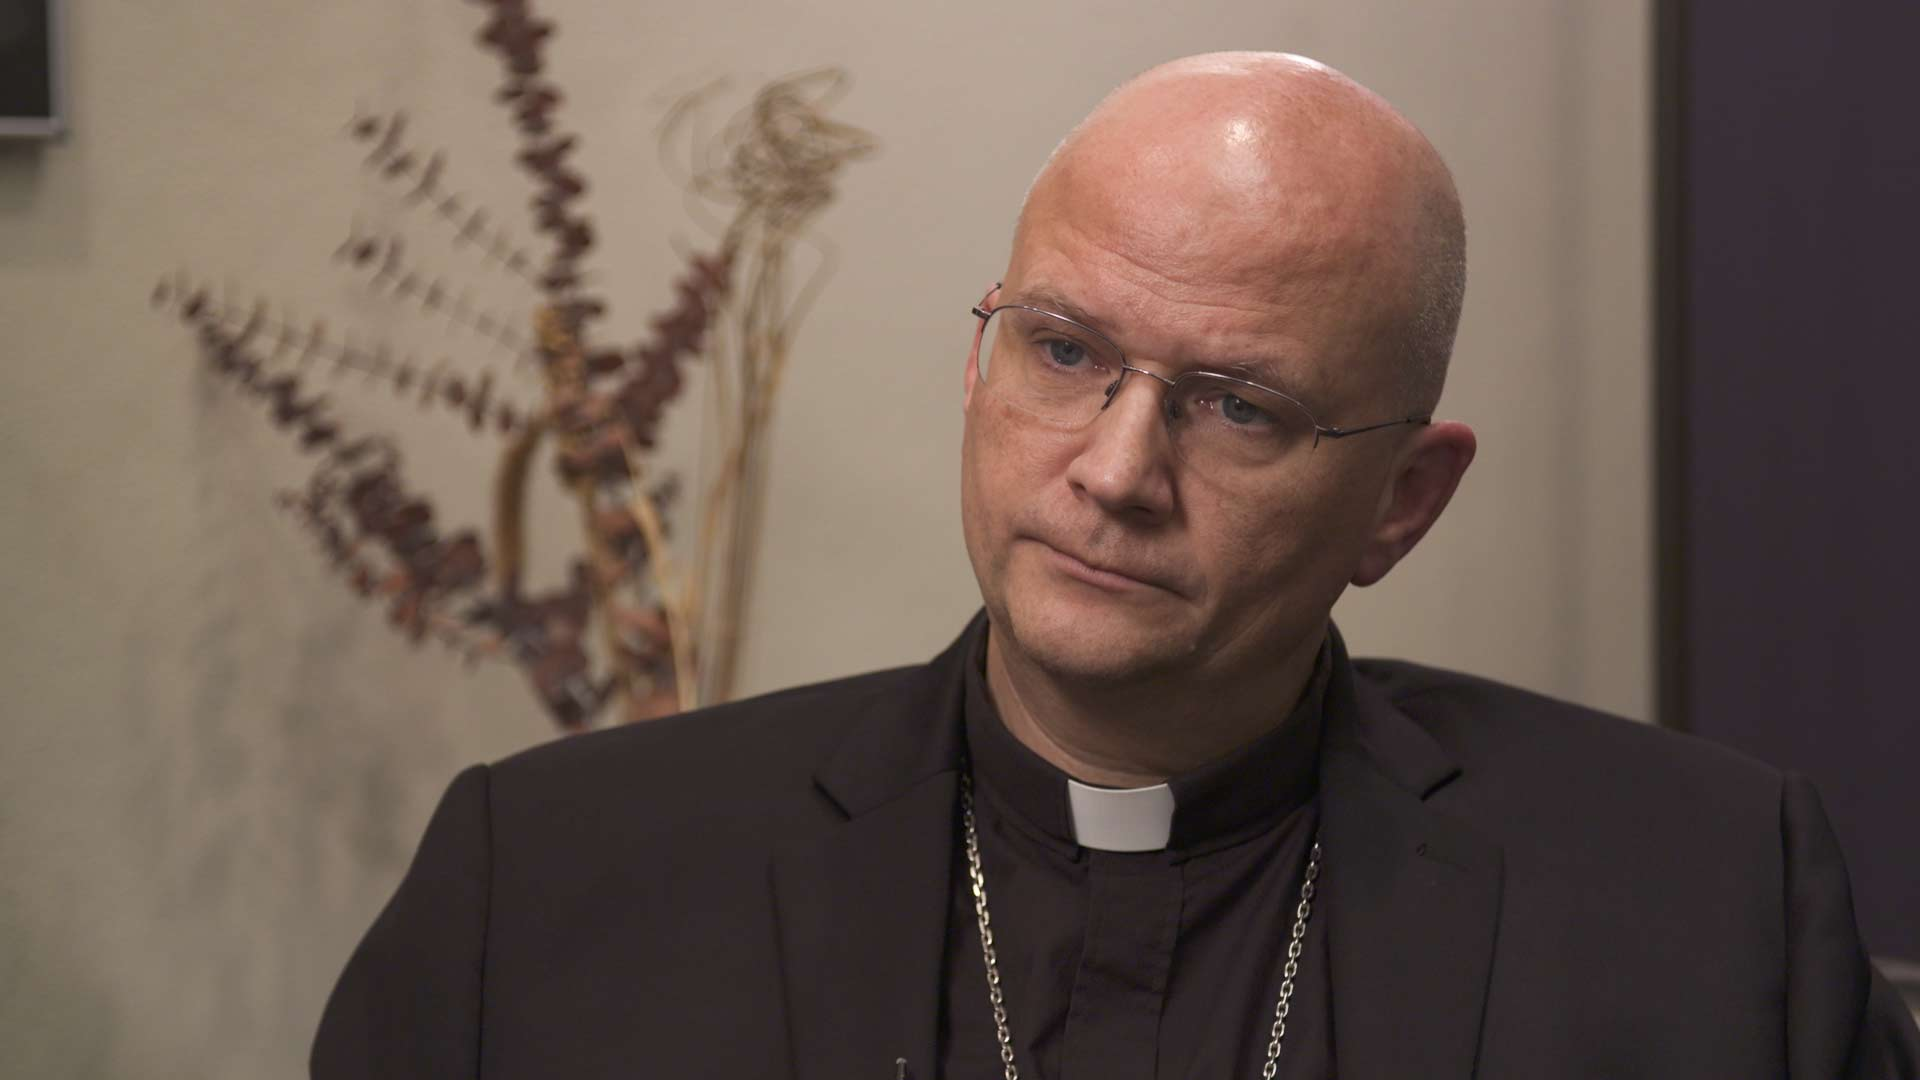 Bishop of the Diocese of Tucson Edward Joseph Weisenburger, in a September 2018 studio interview at Arizona Public Media.